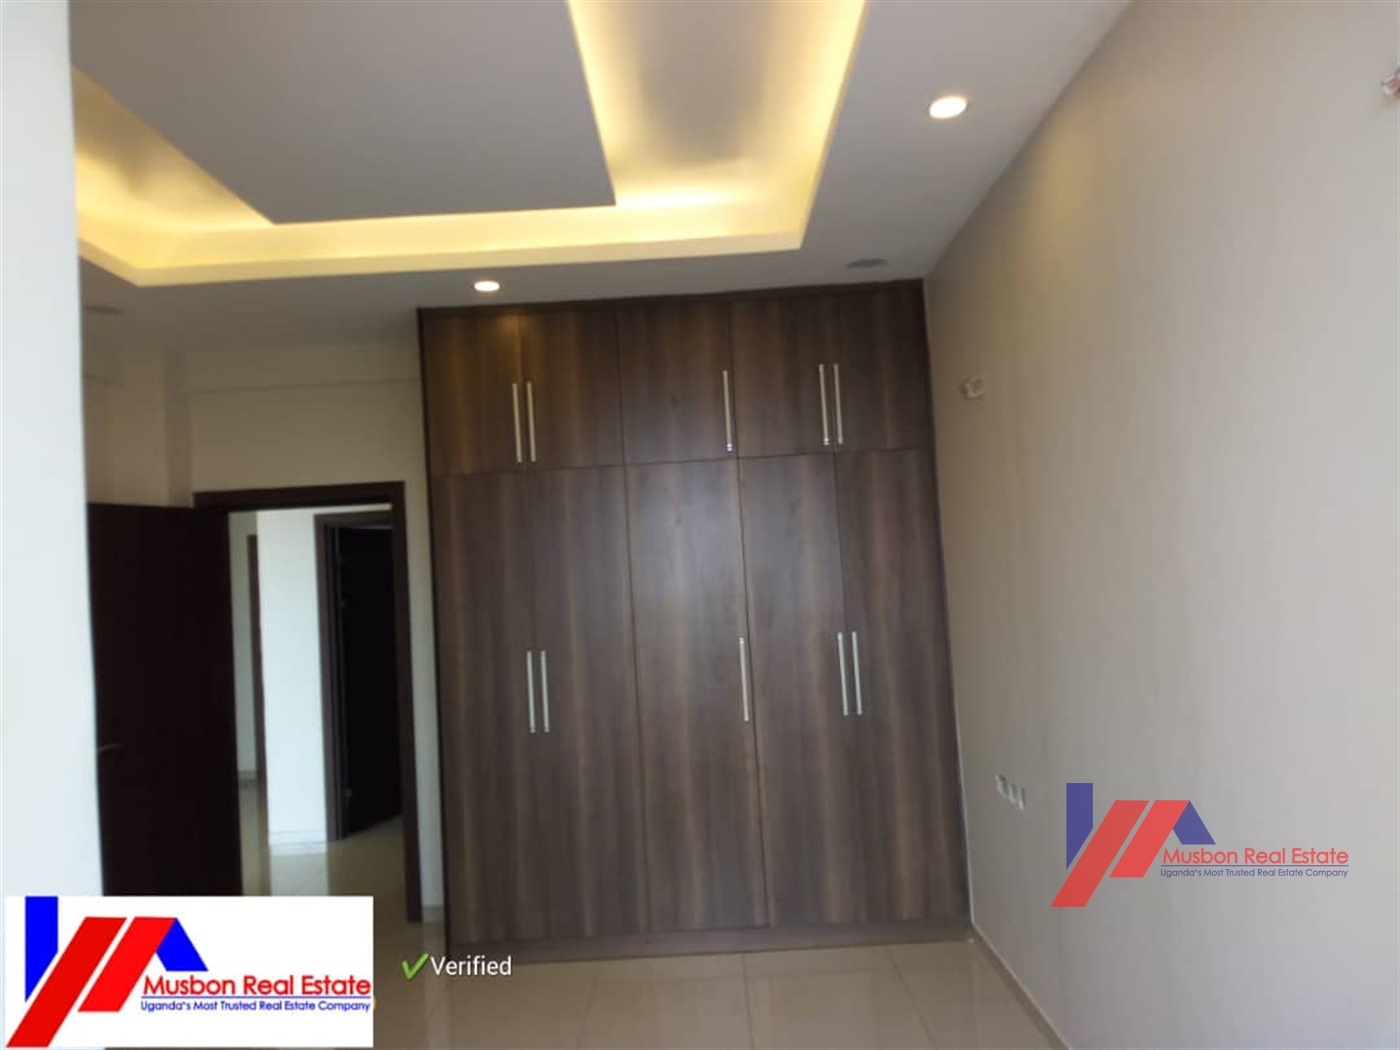 Apartment for sale in Naguru Kampala